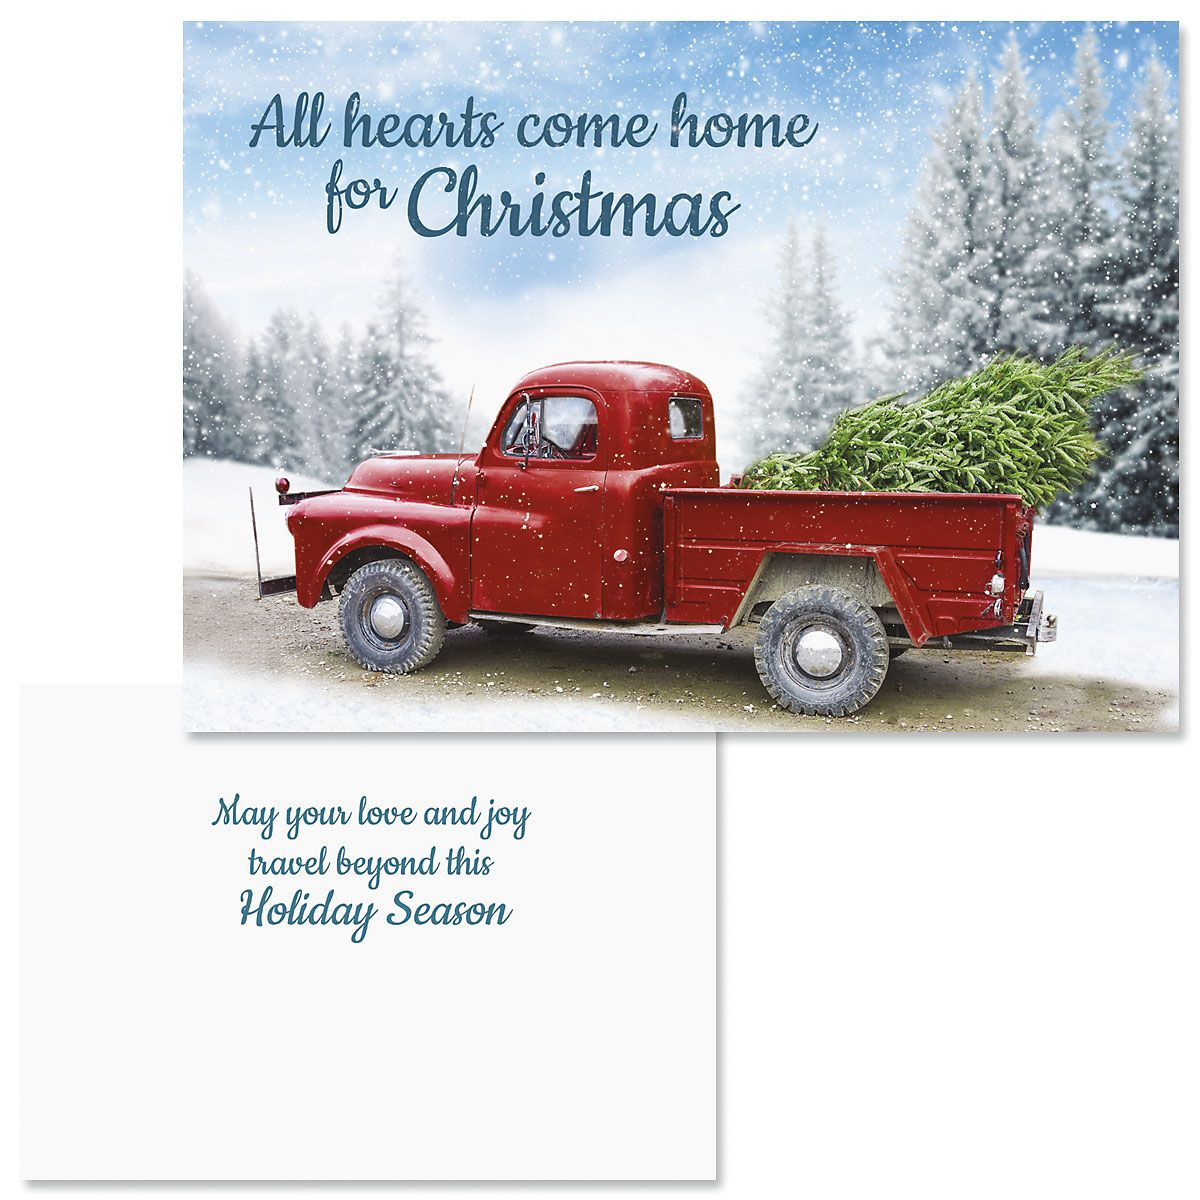 Winter Road Nonpersonalized Christmas Cards - Set of 18